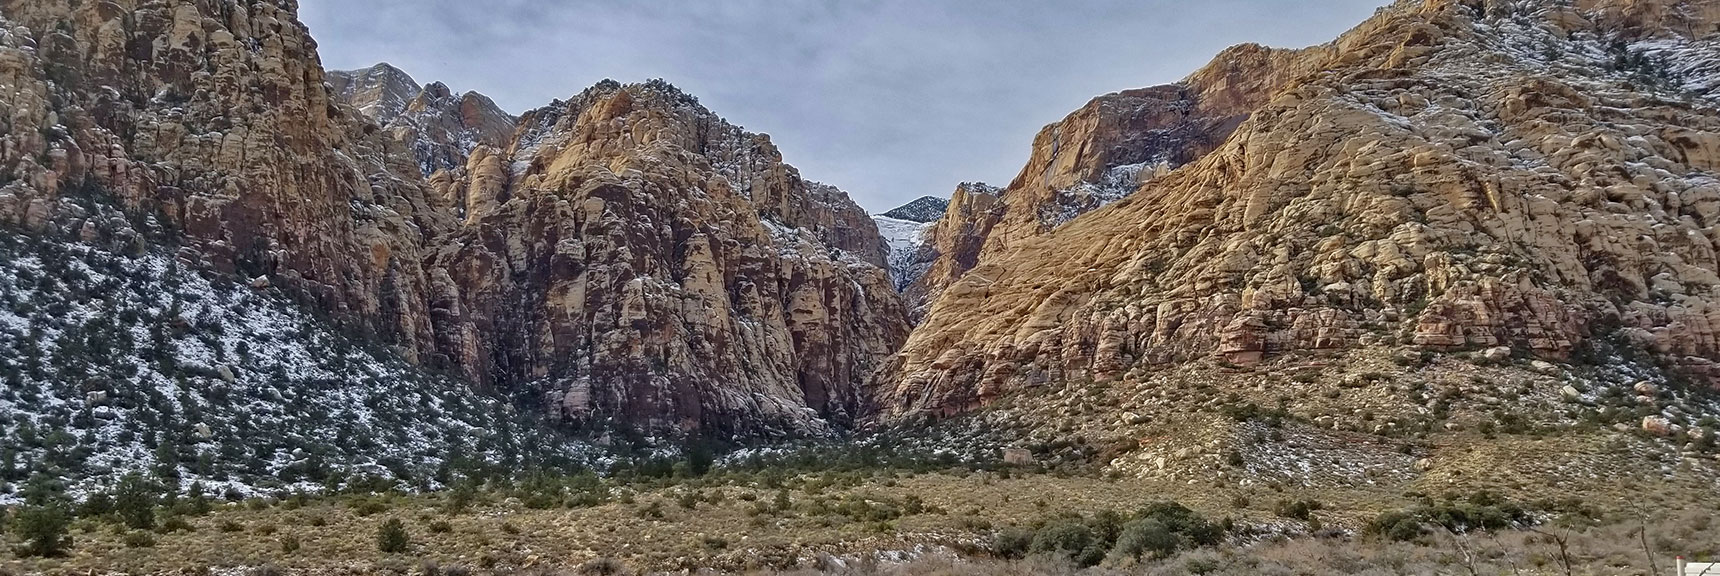 Red Rock National Park View of Ice Box Canyon from Scenic Drive